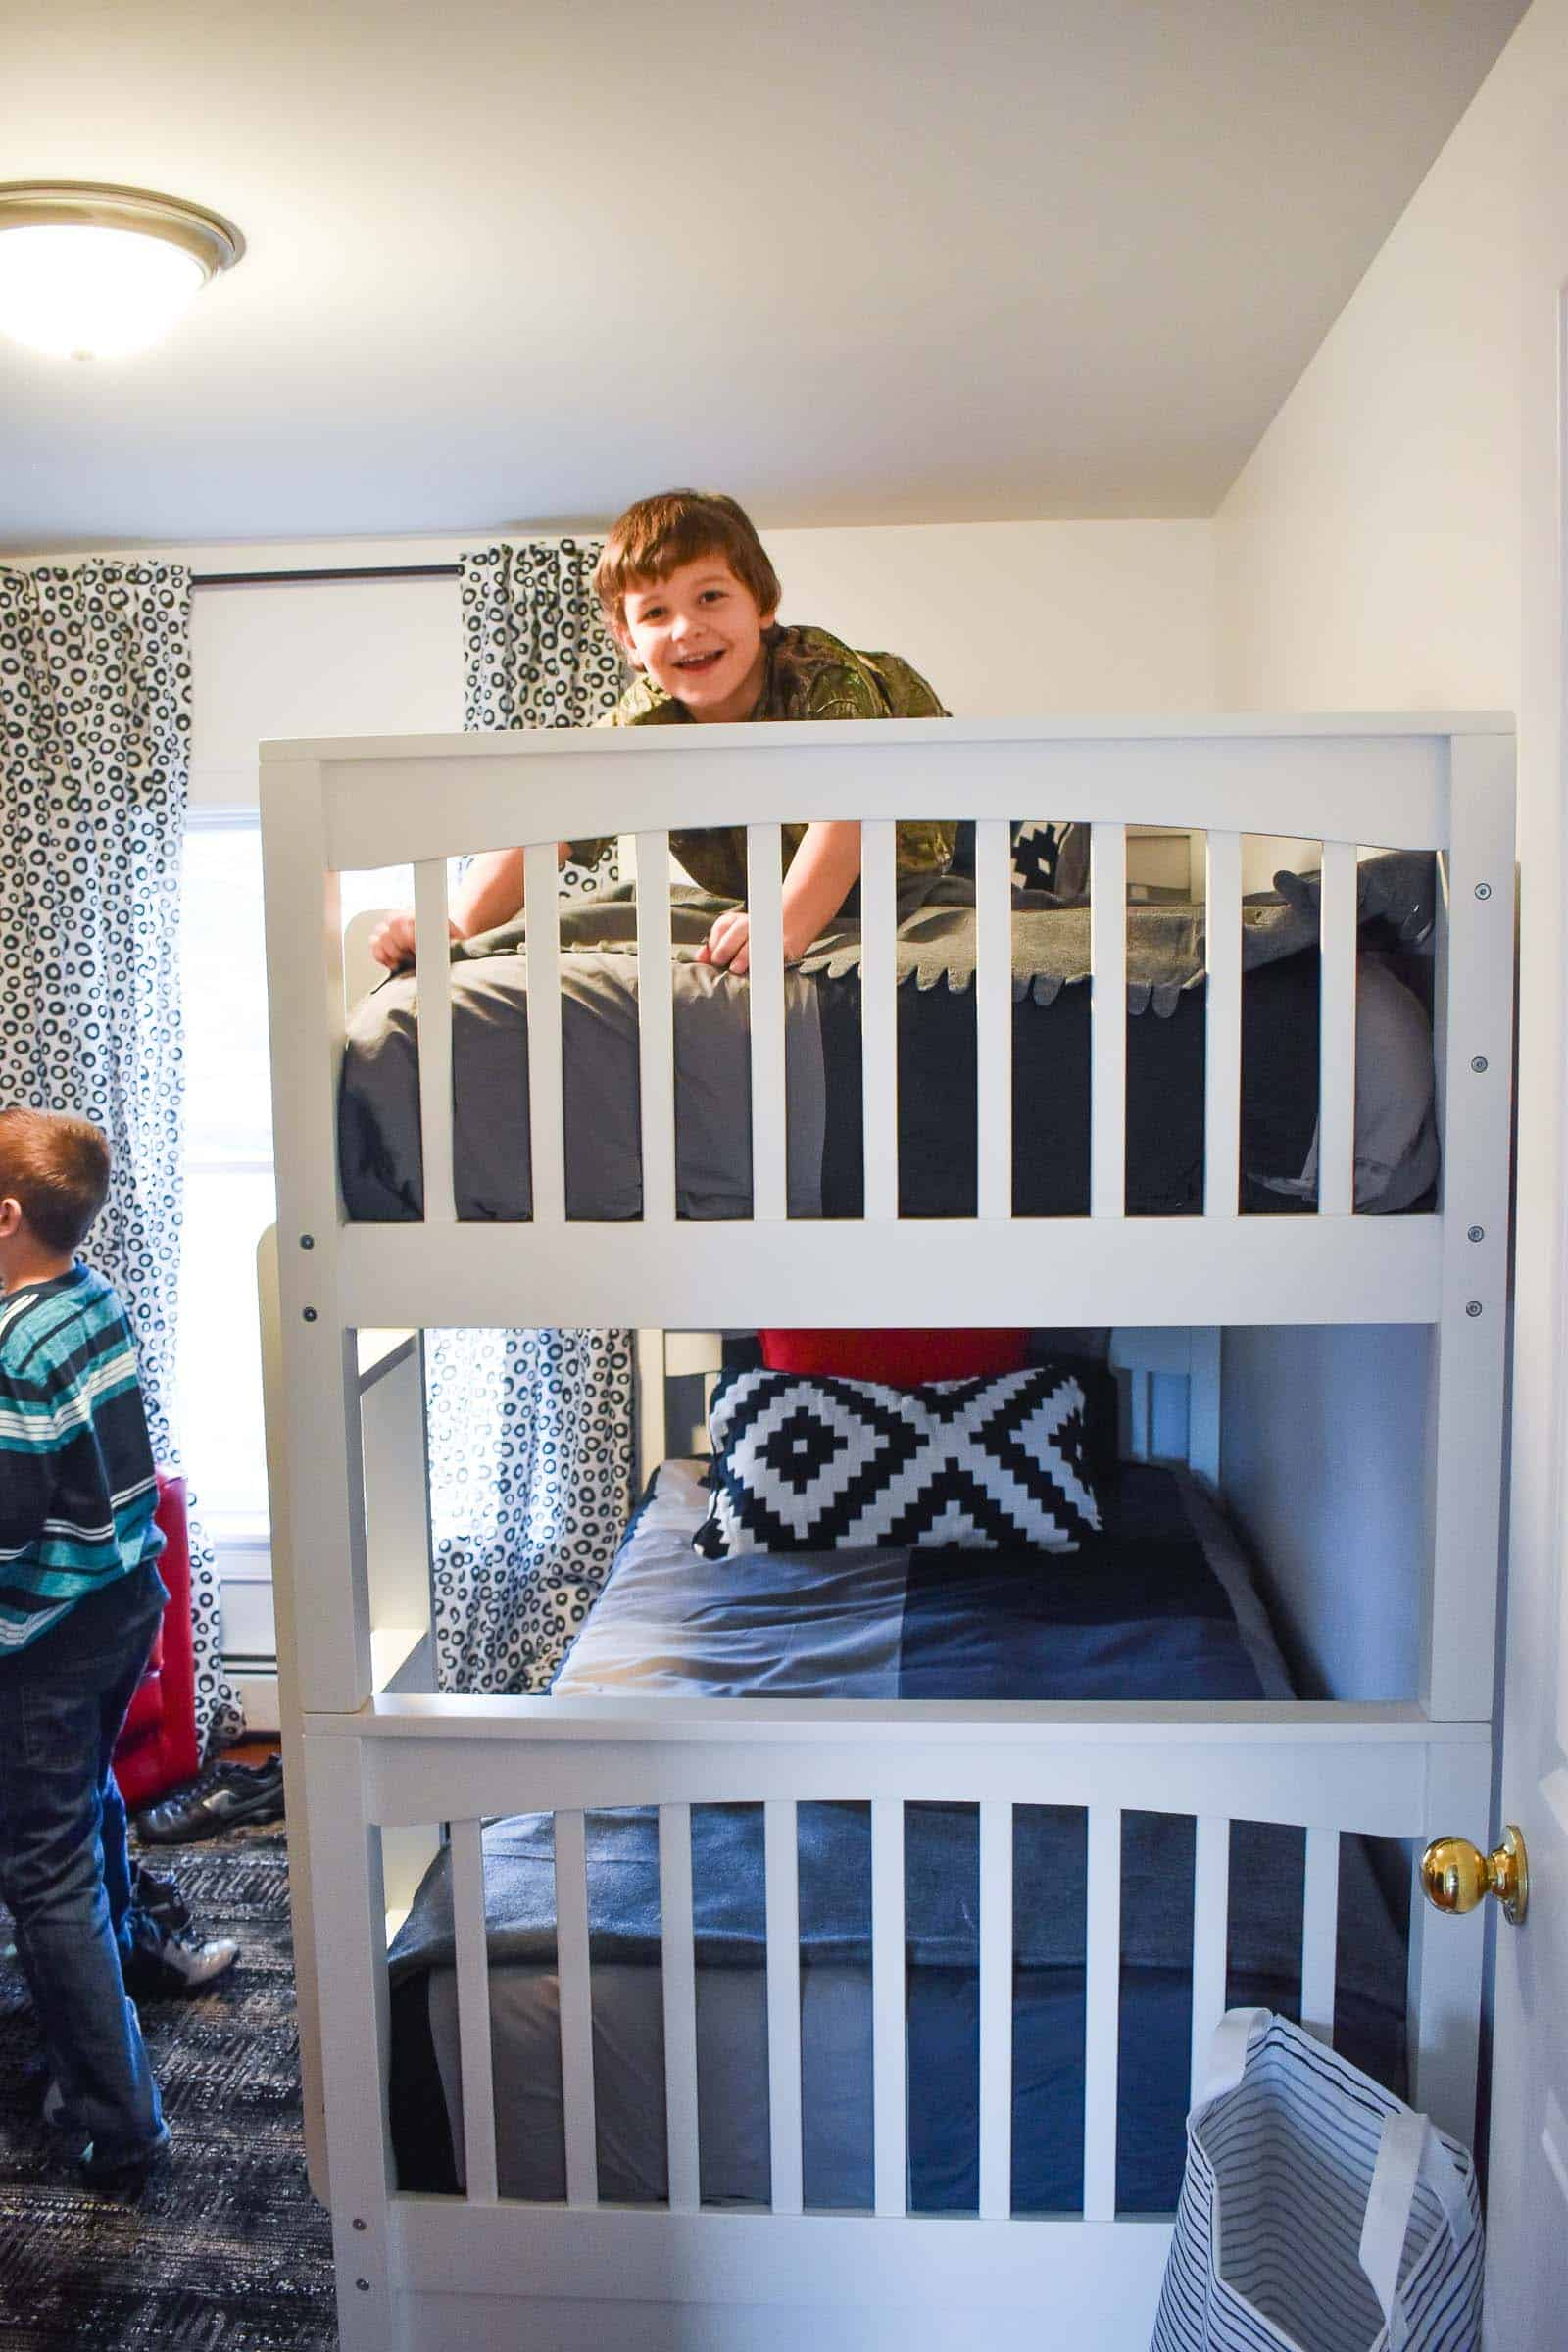 boys in shared bedroom with bunkbed